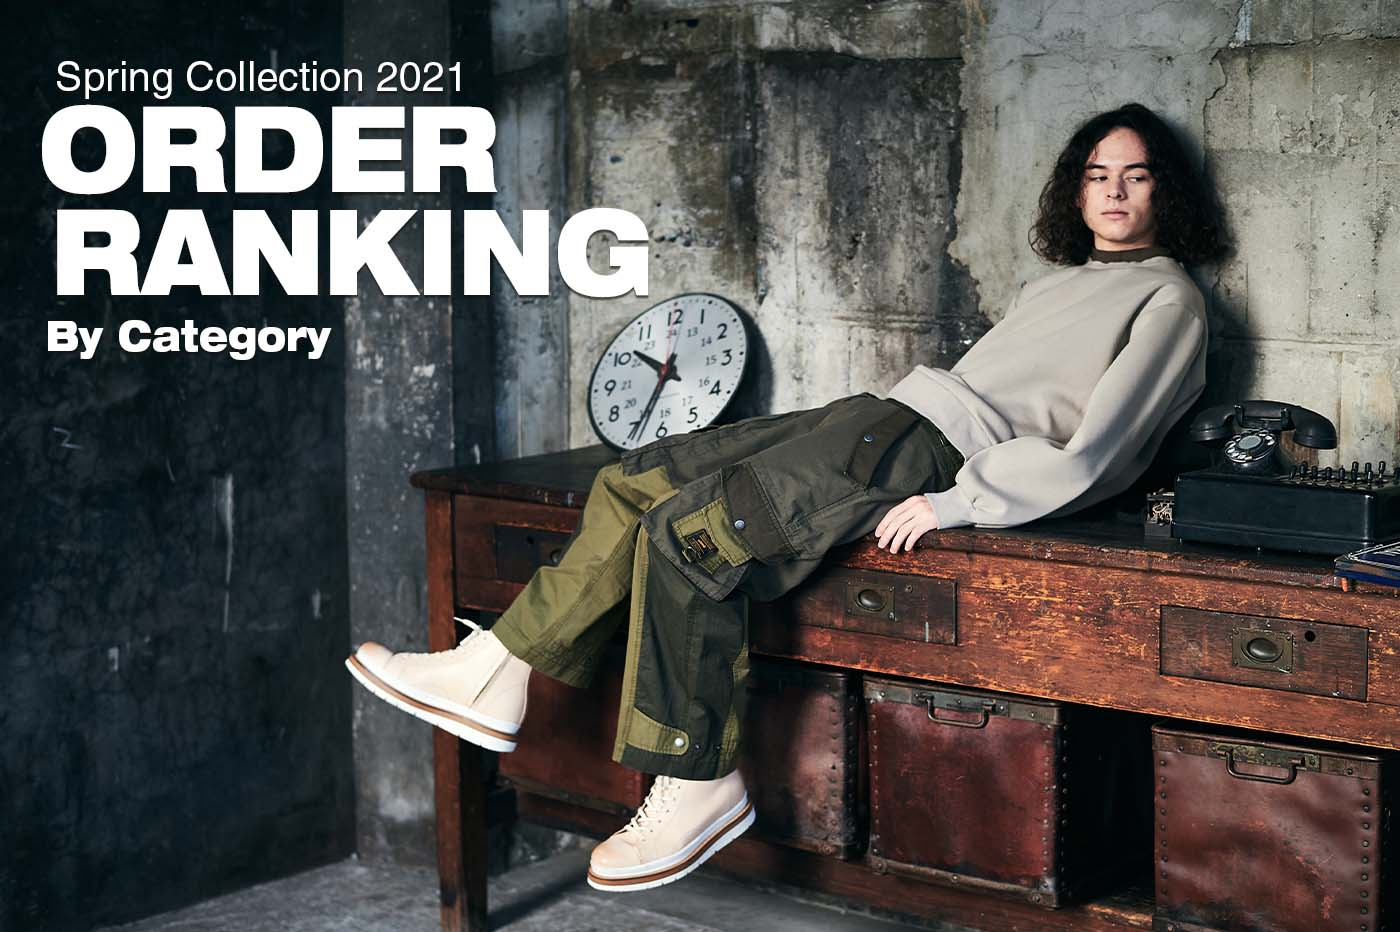 Spring Collection 2021 ORDER RANKING